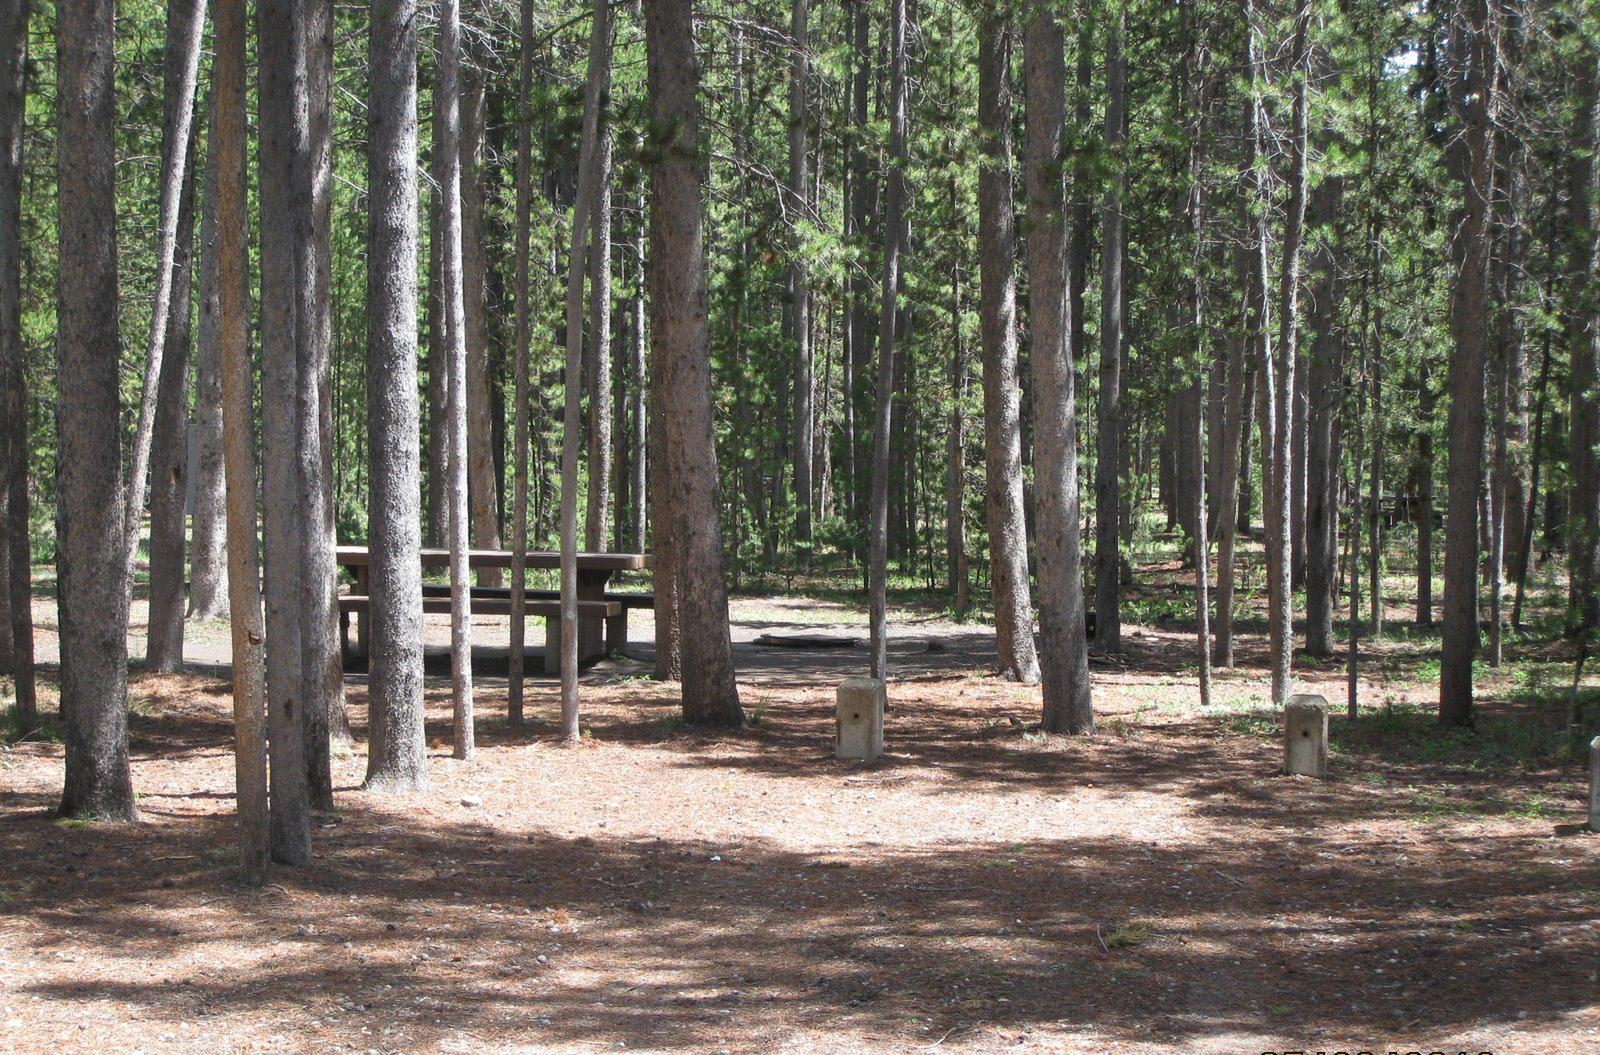 Site C7, surrounded by pine trees, picnic table & fire ringSite C7